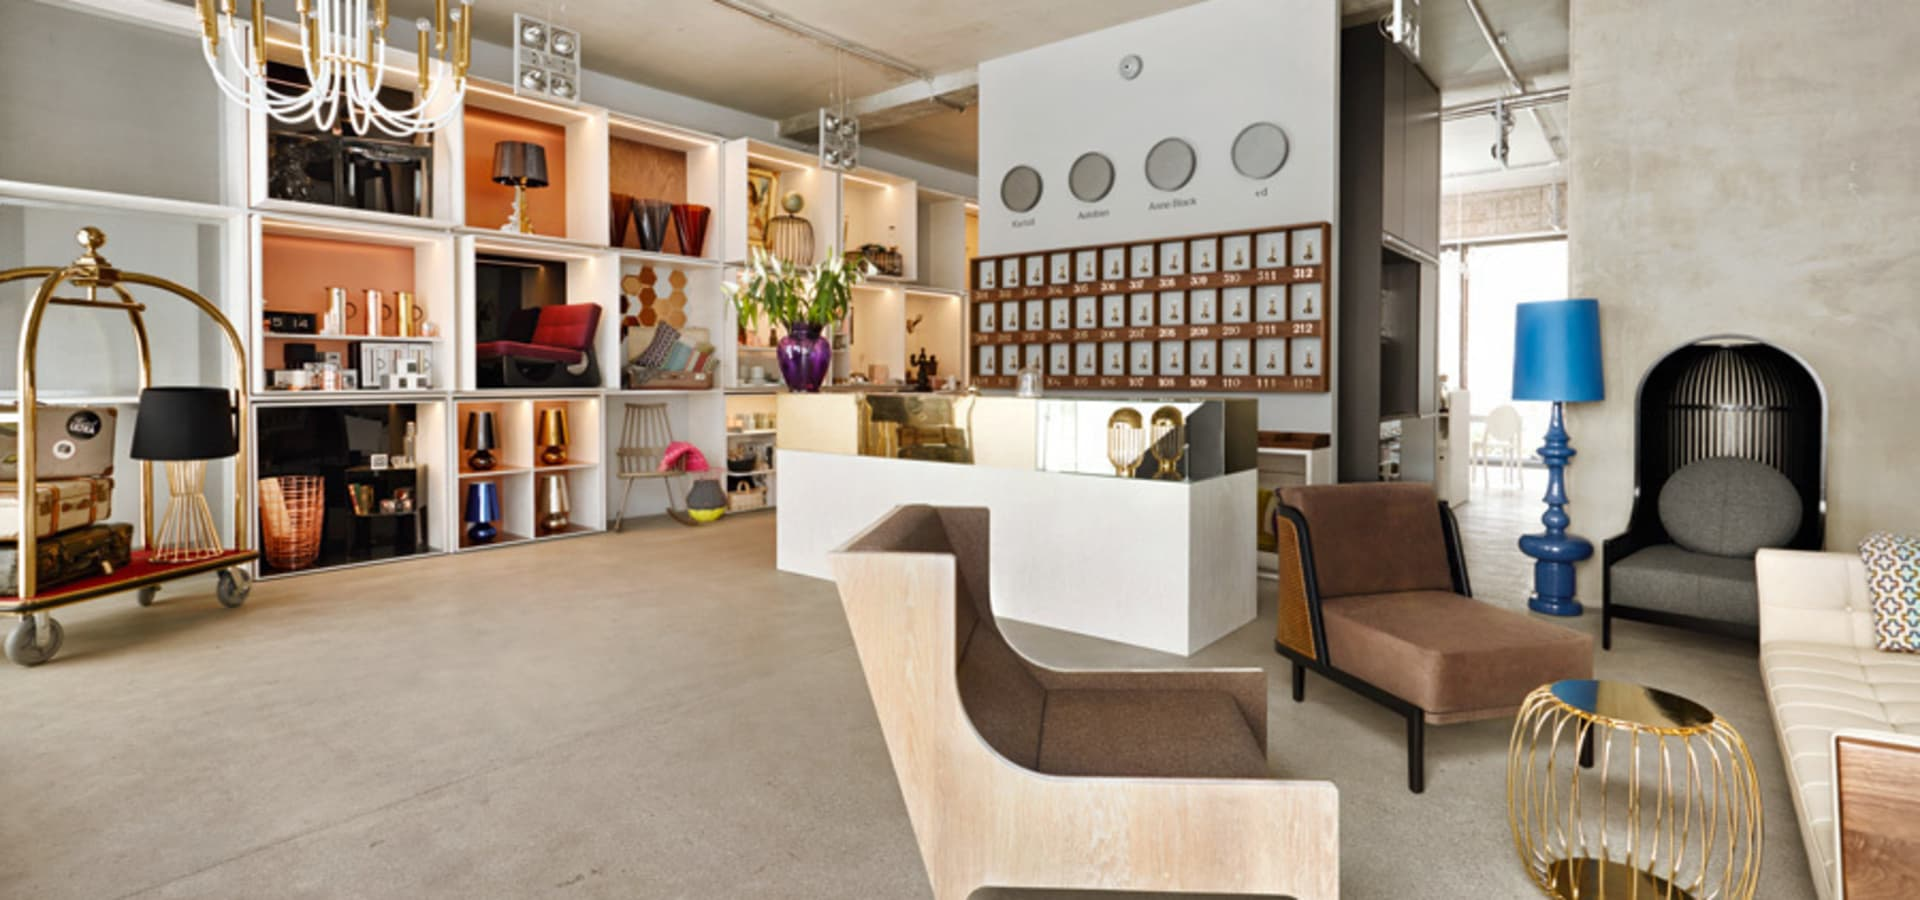 Hotel ULTRA Concept Store: Furniture & Accessories in BERLIN | homify